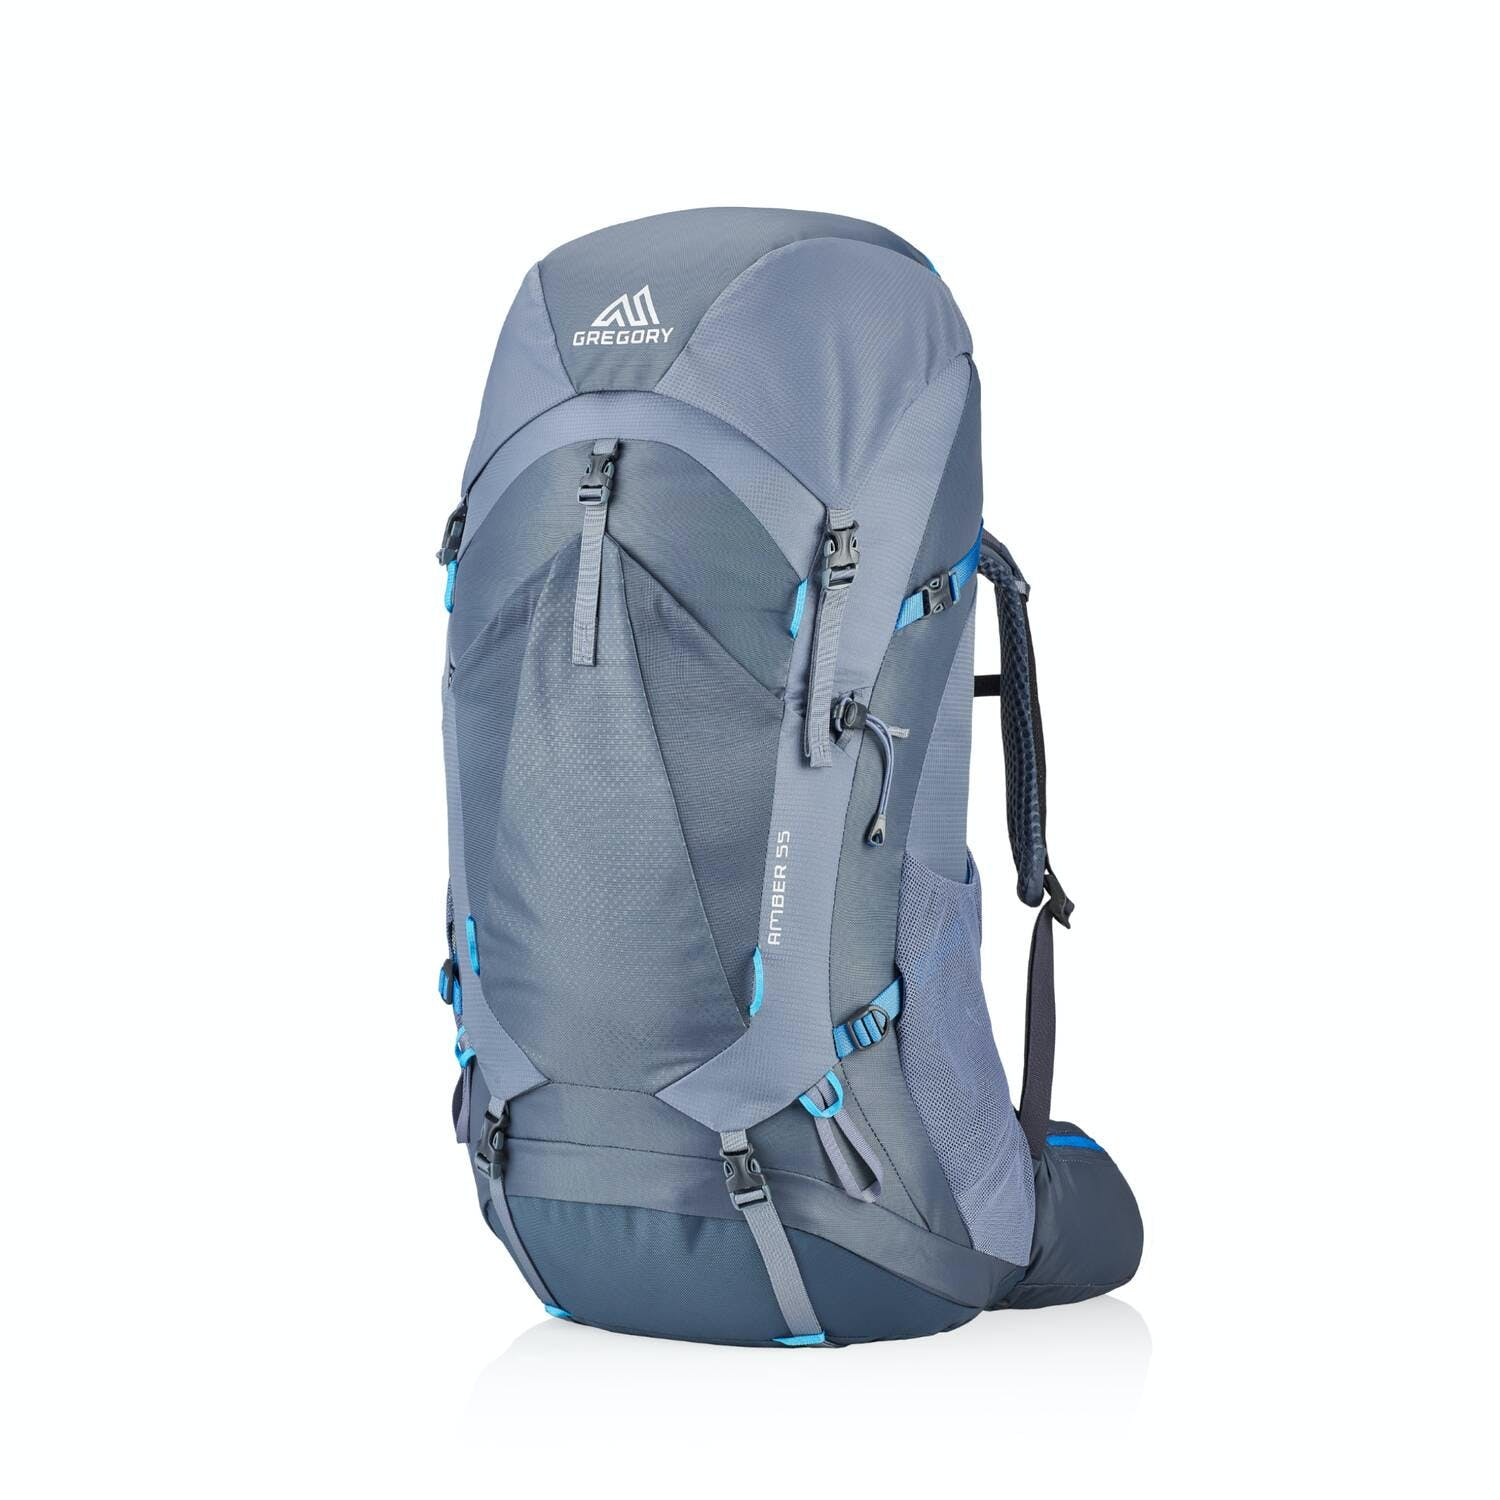 GREGORY - AMBER 55 W - OS - Arctic Grey